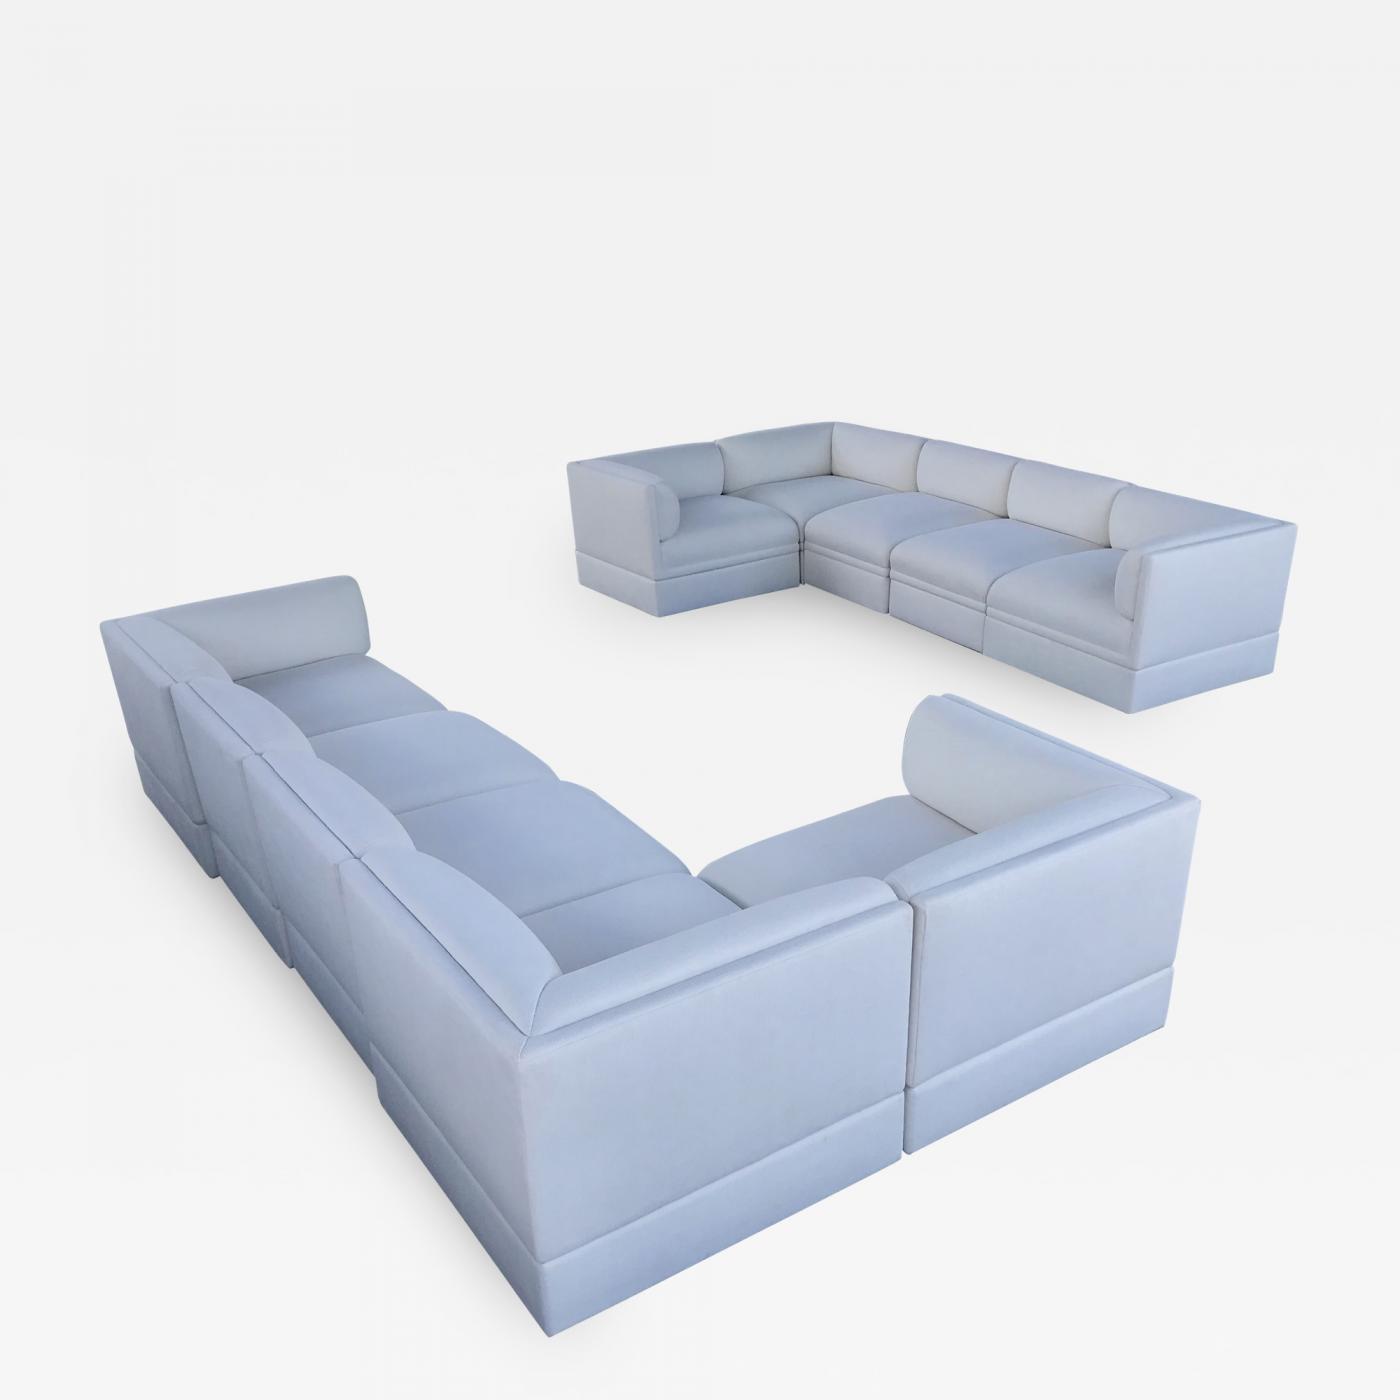 Brueton - 10 Pieces Brueton Sectional Sofa